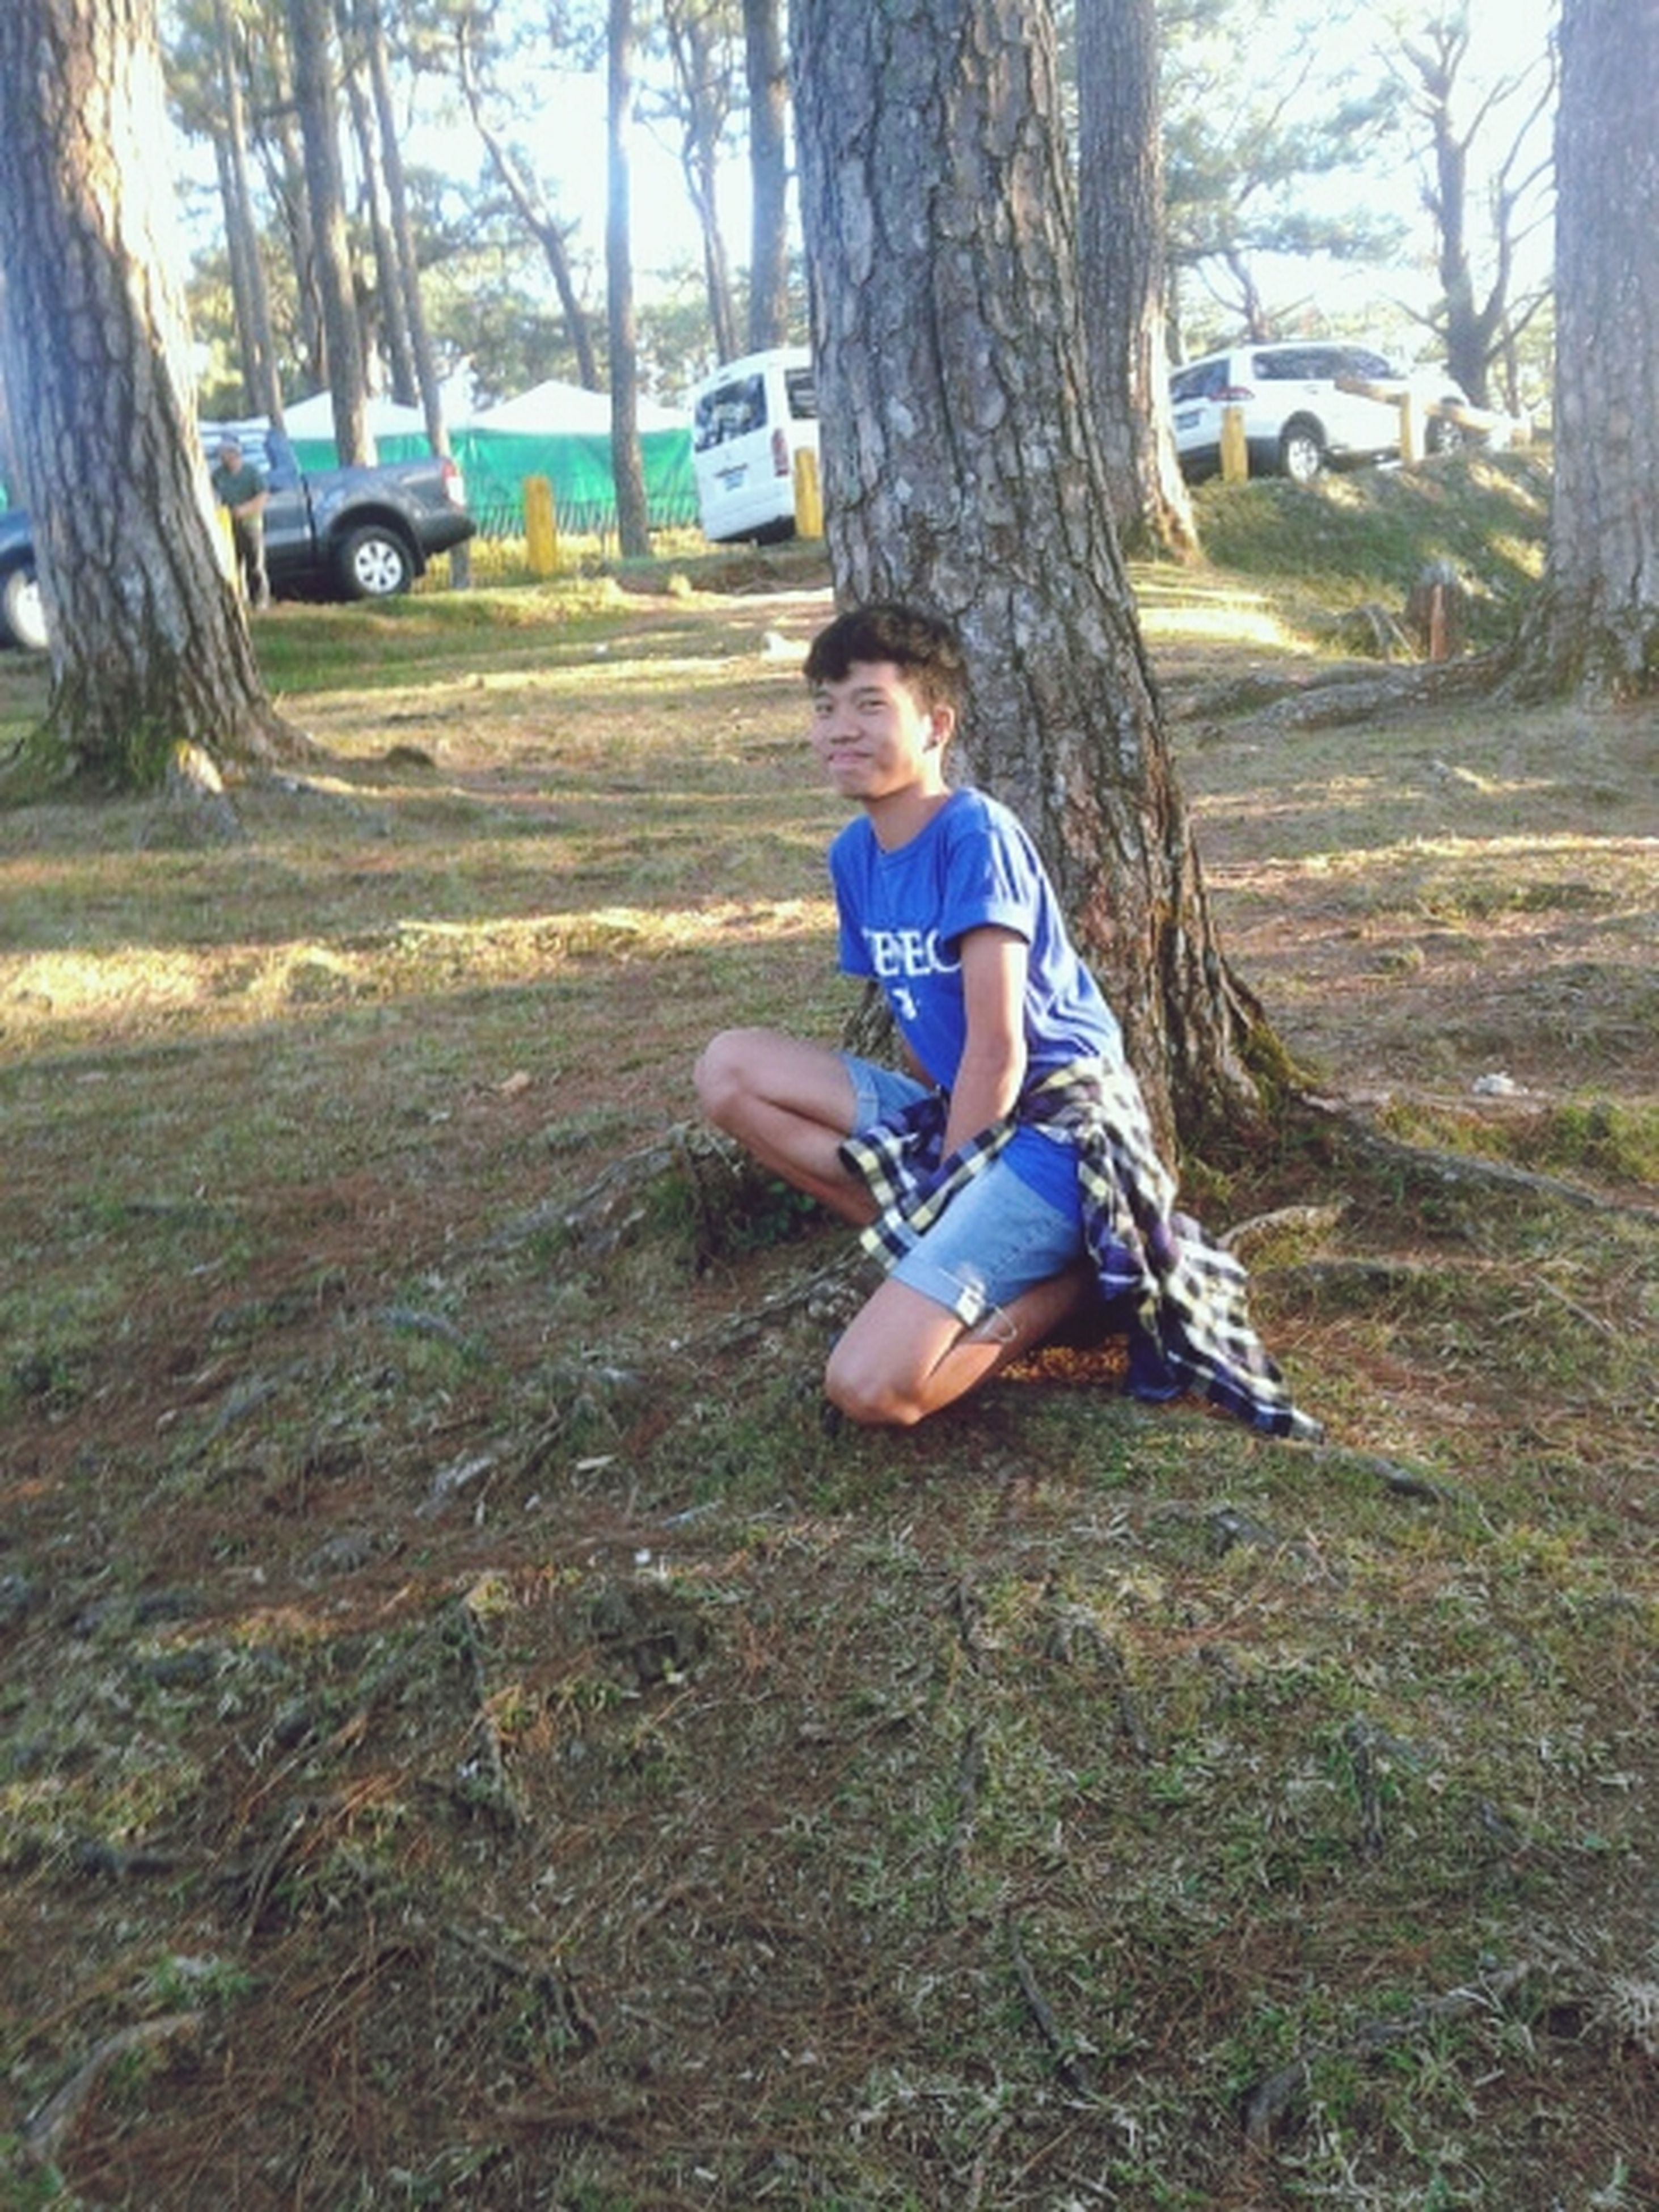 childhood, tree, leisure activity, full length, lifestyles, tree trunk, elementary age, park - man made space, person, boys, casual clothing, girls, grass, innocence, playful, park, sitting, playing